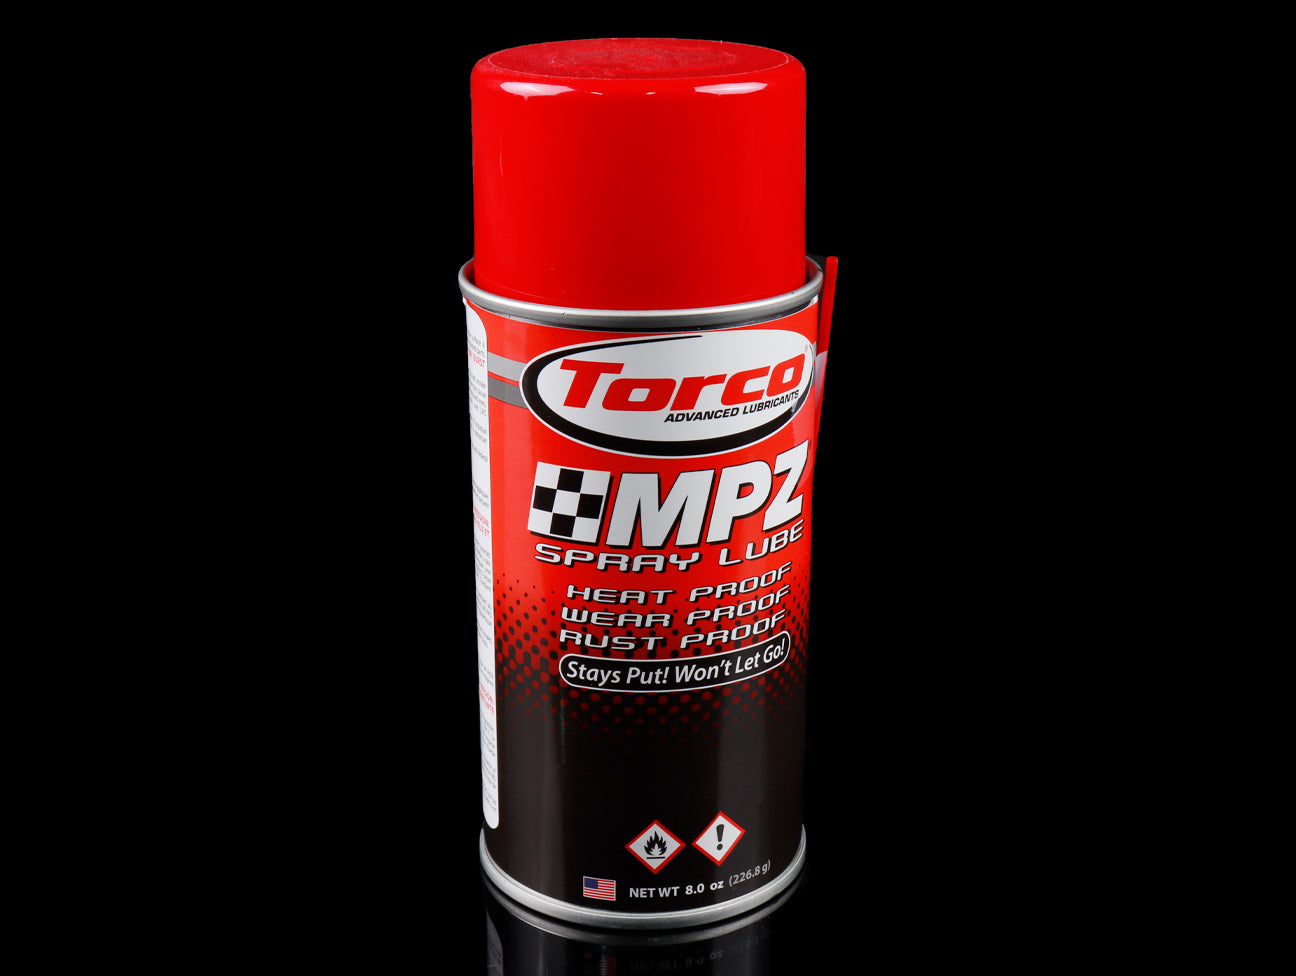 Torco MPZ Spray Lube